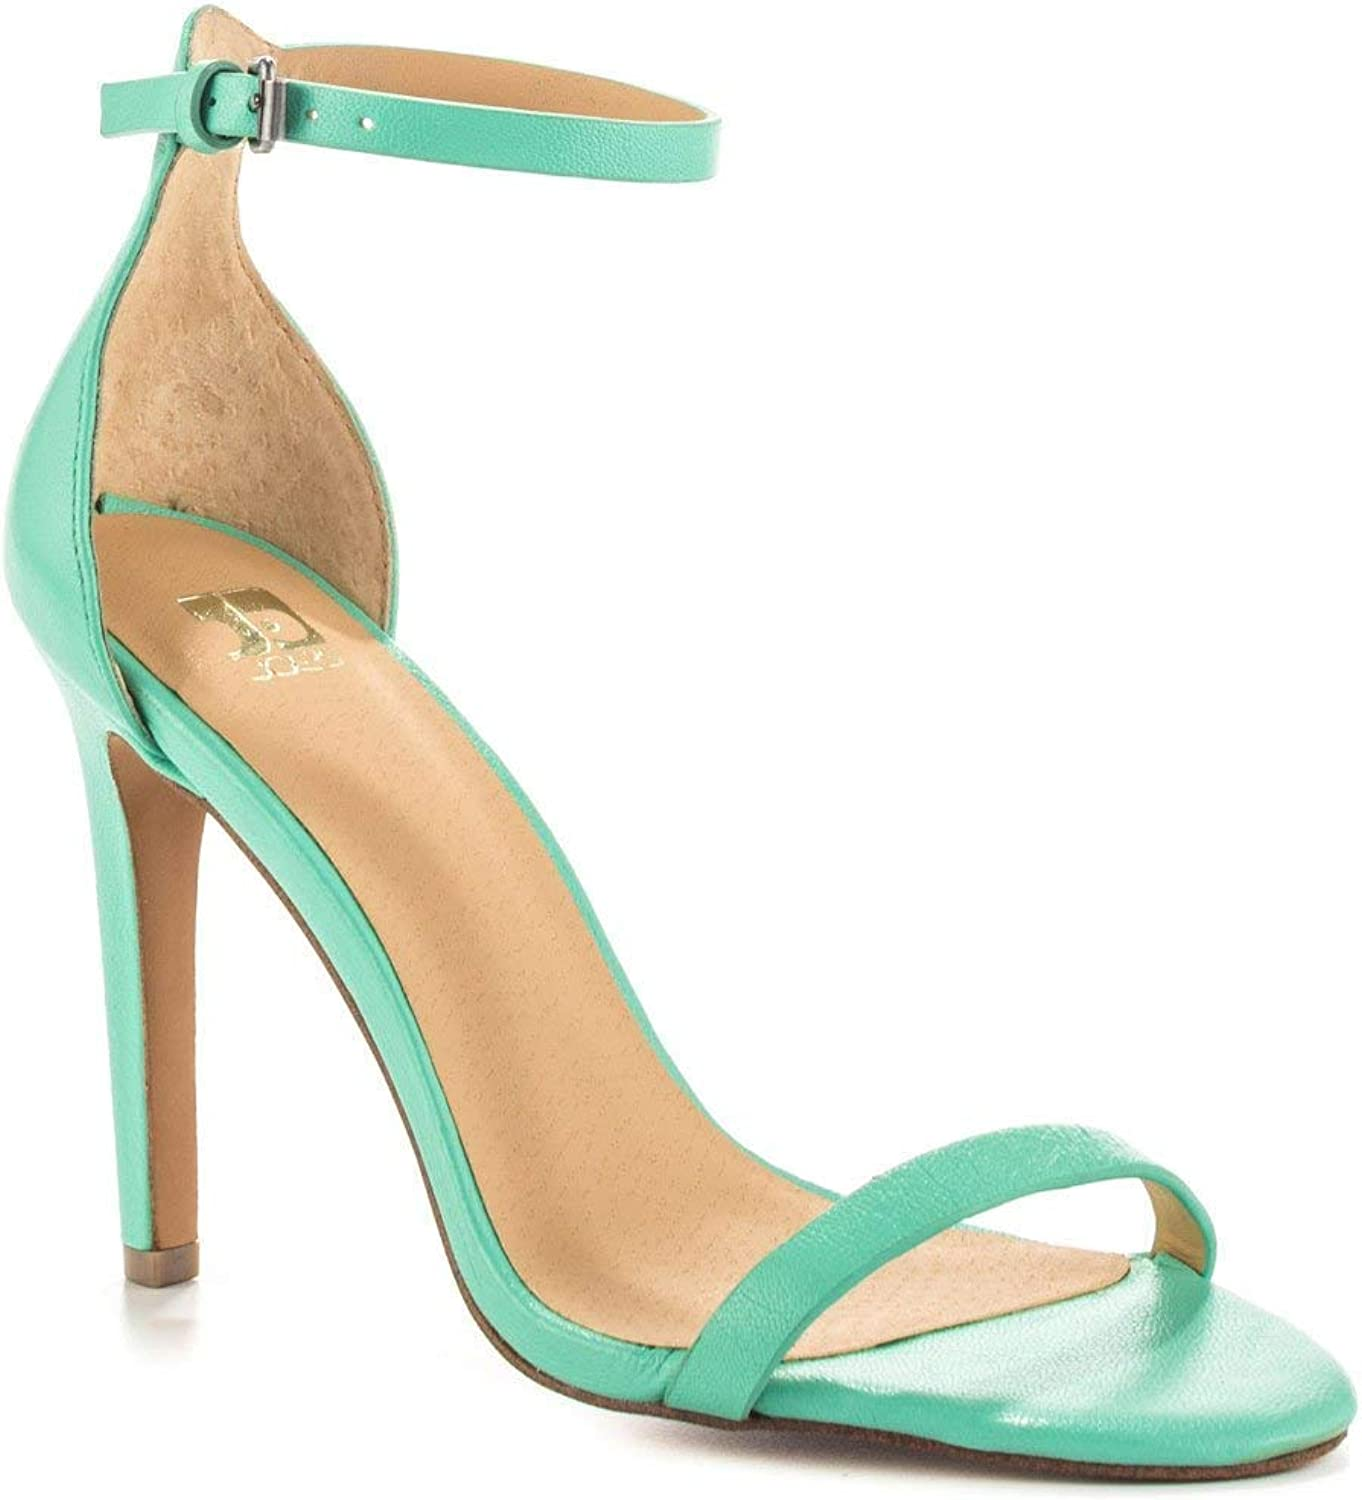 Joe's Jeans Women's Import Dress Sandal